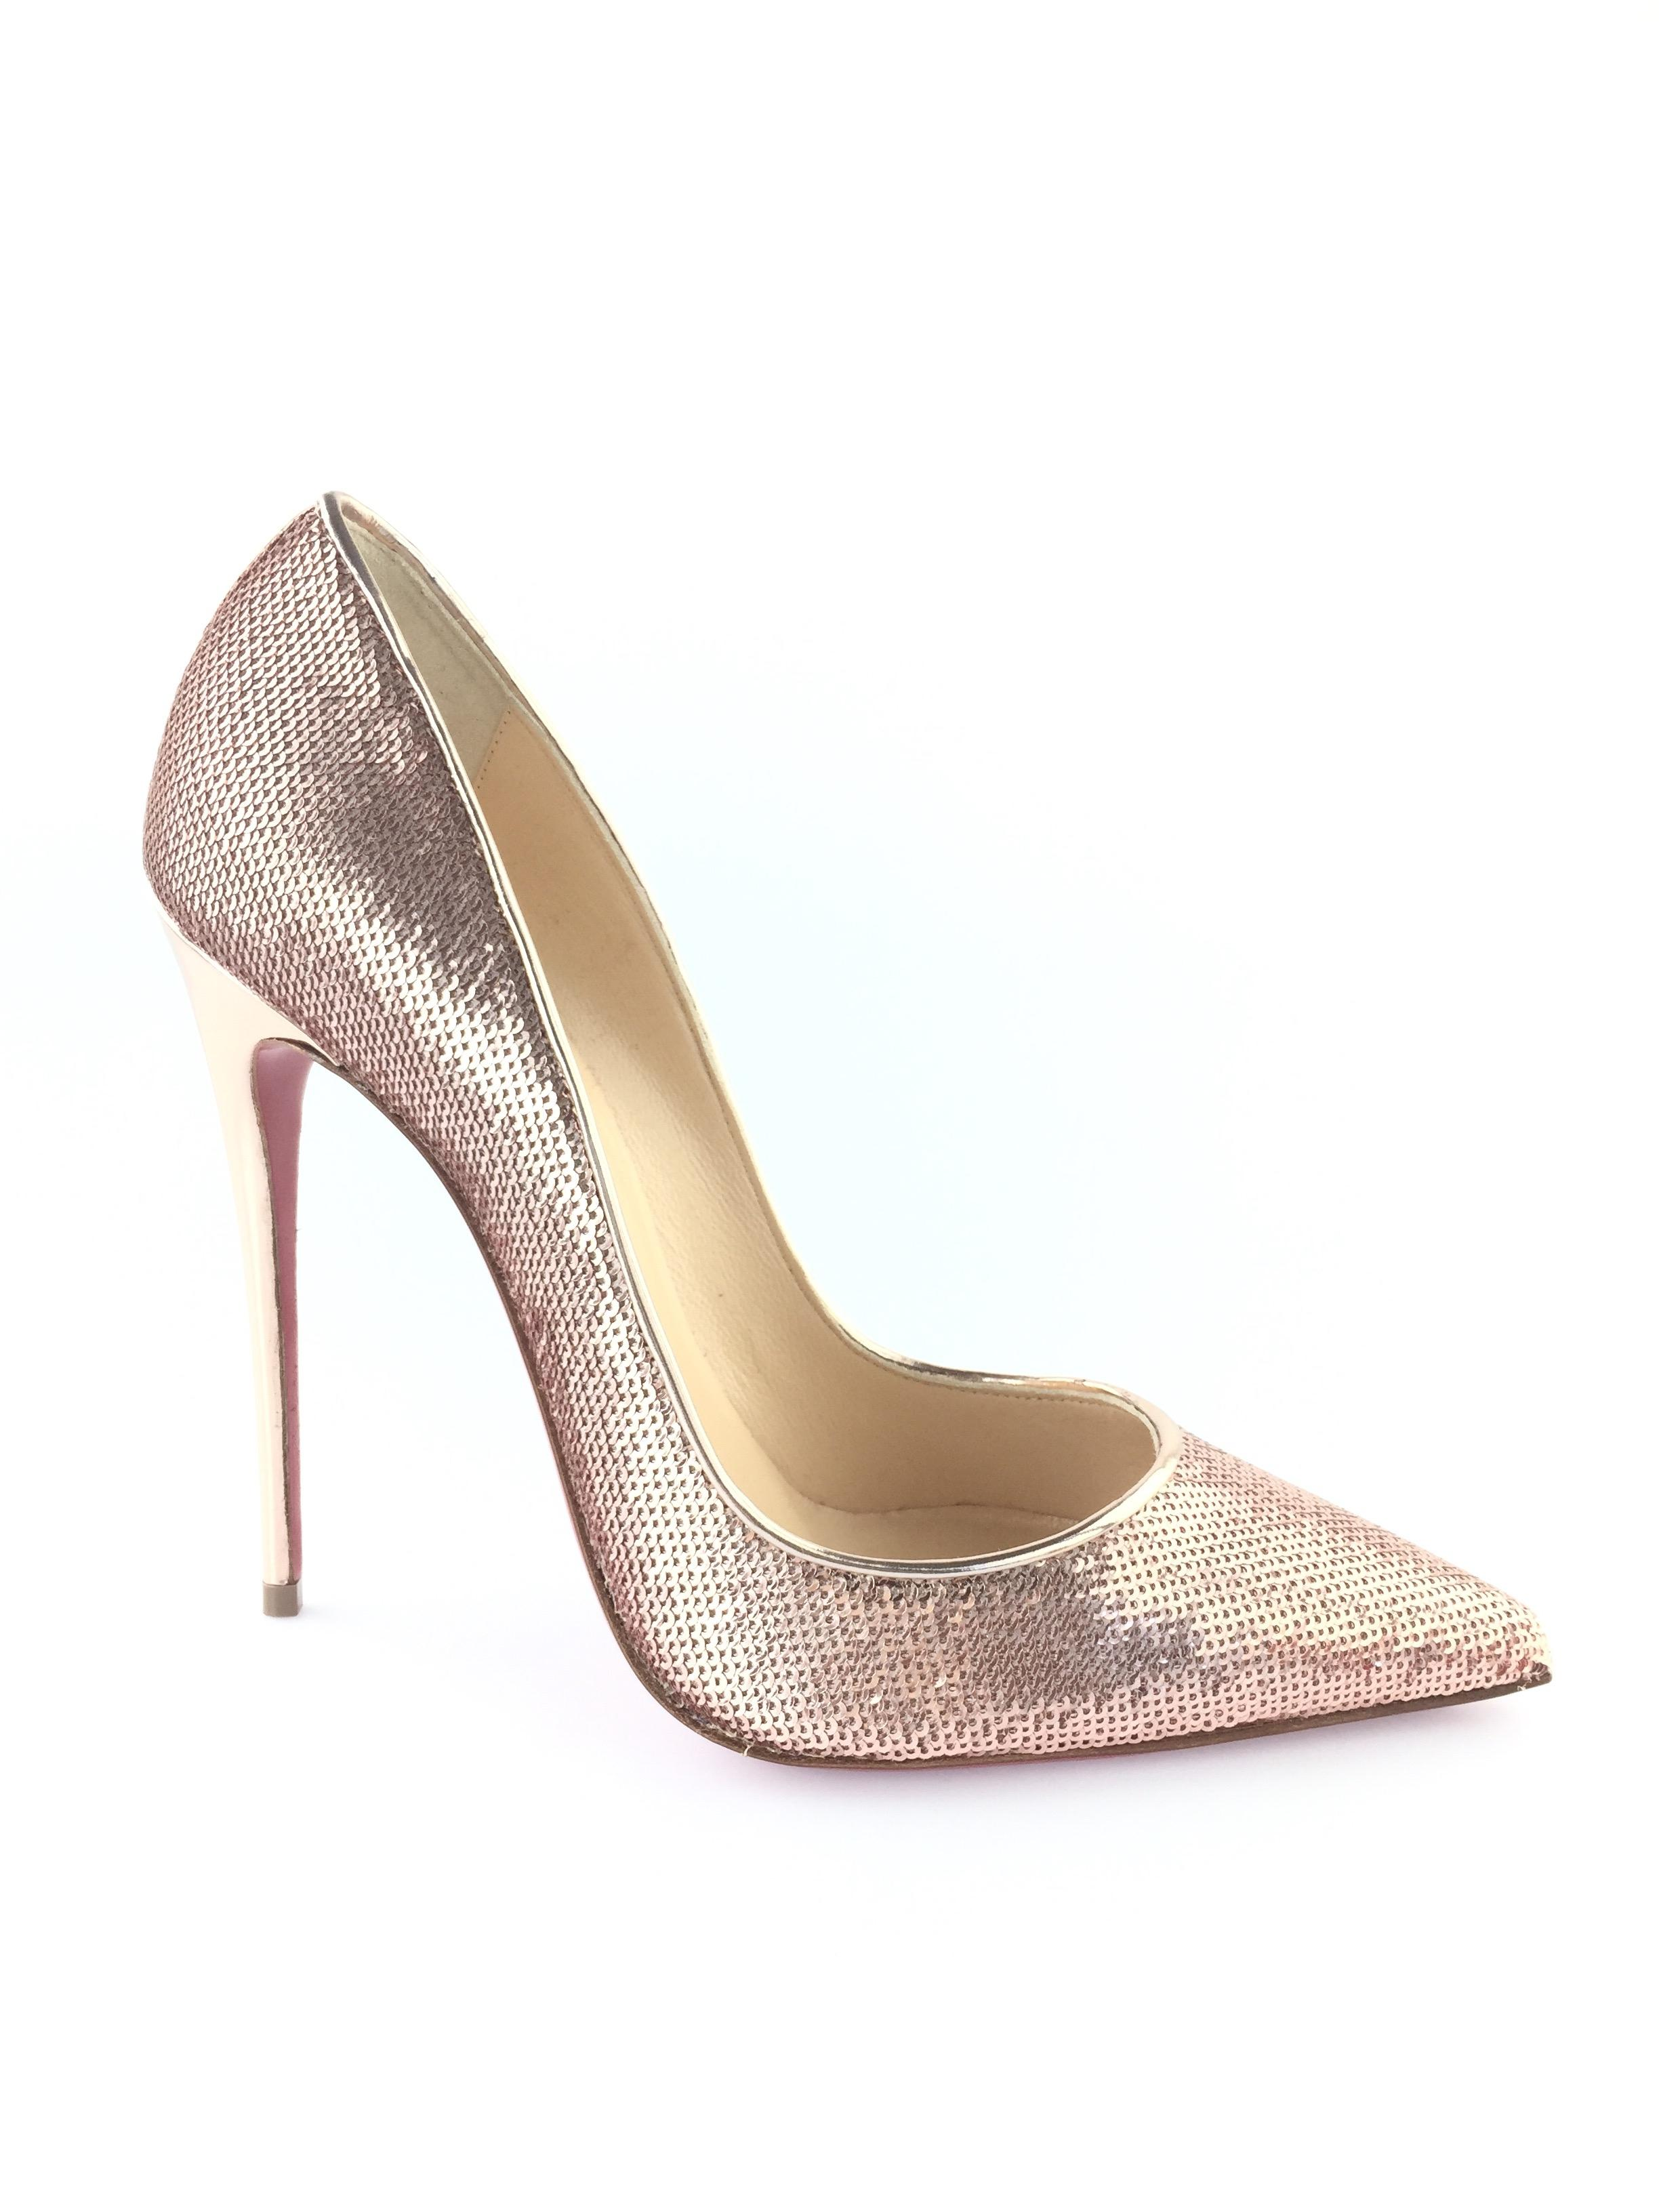 online store f7f65 092fb Christian Christian Christian Louboutin Rose Gold So Kate ...